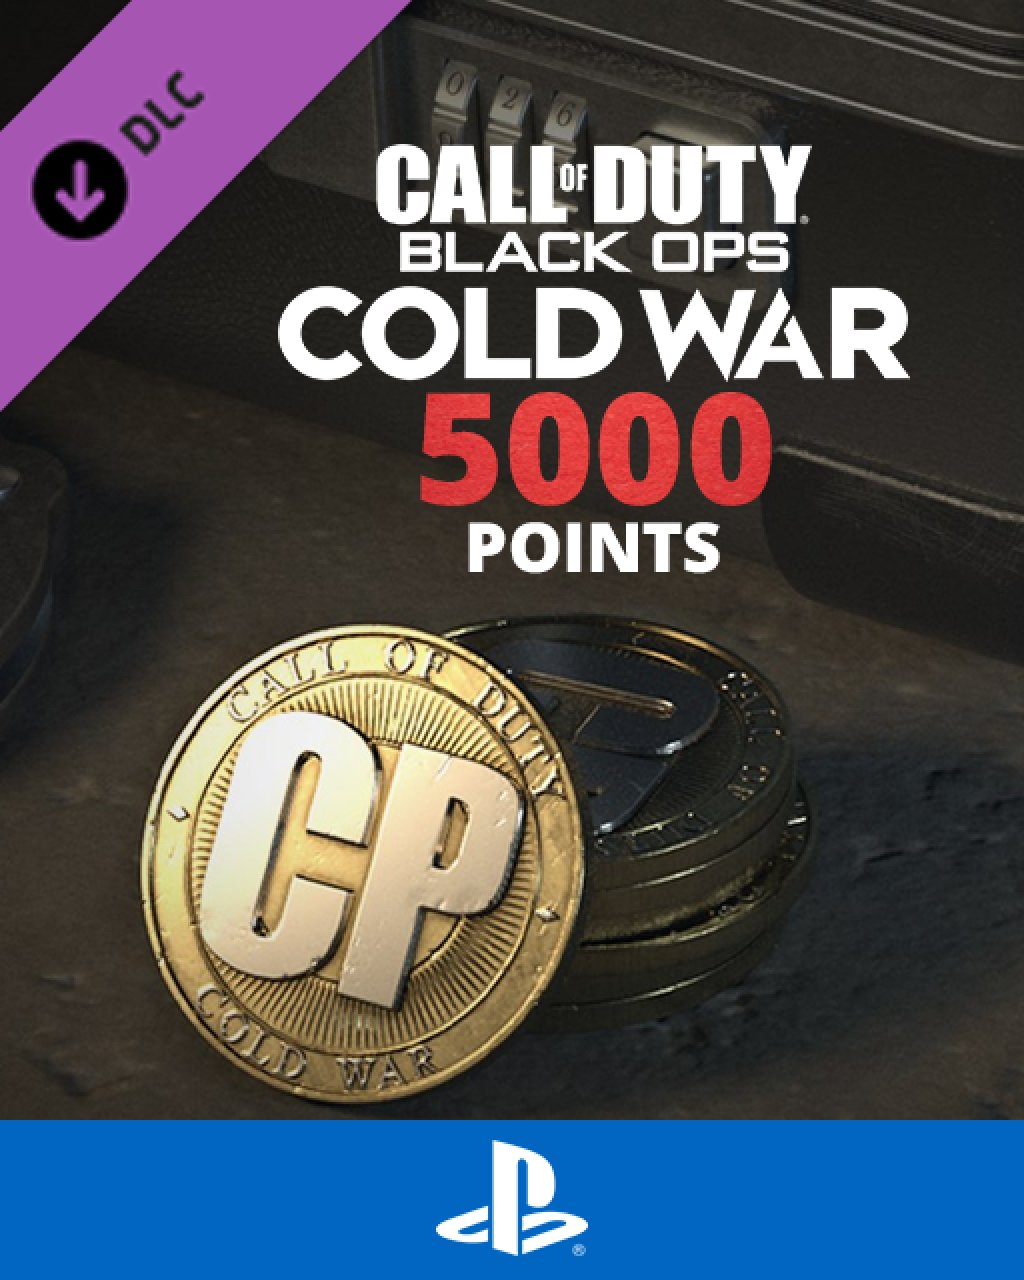 Call of Duty Black Ops Cold War 5000 Points